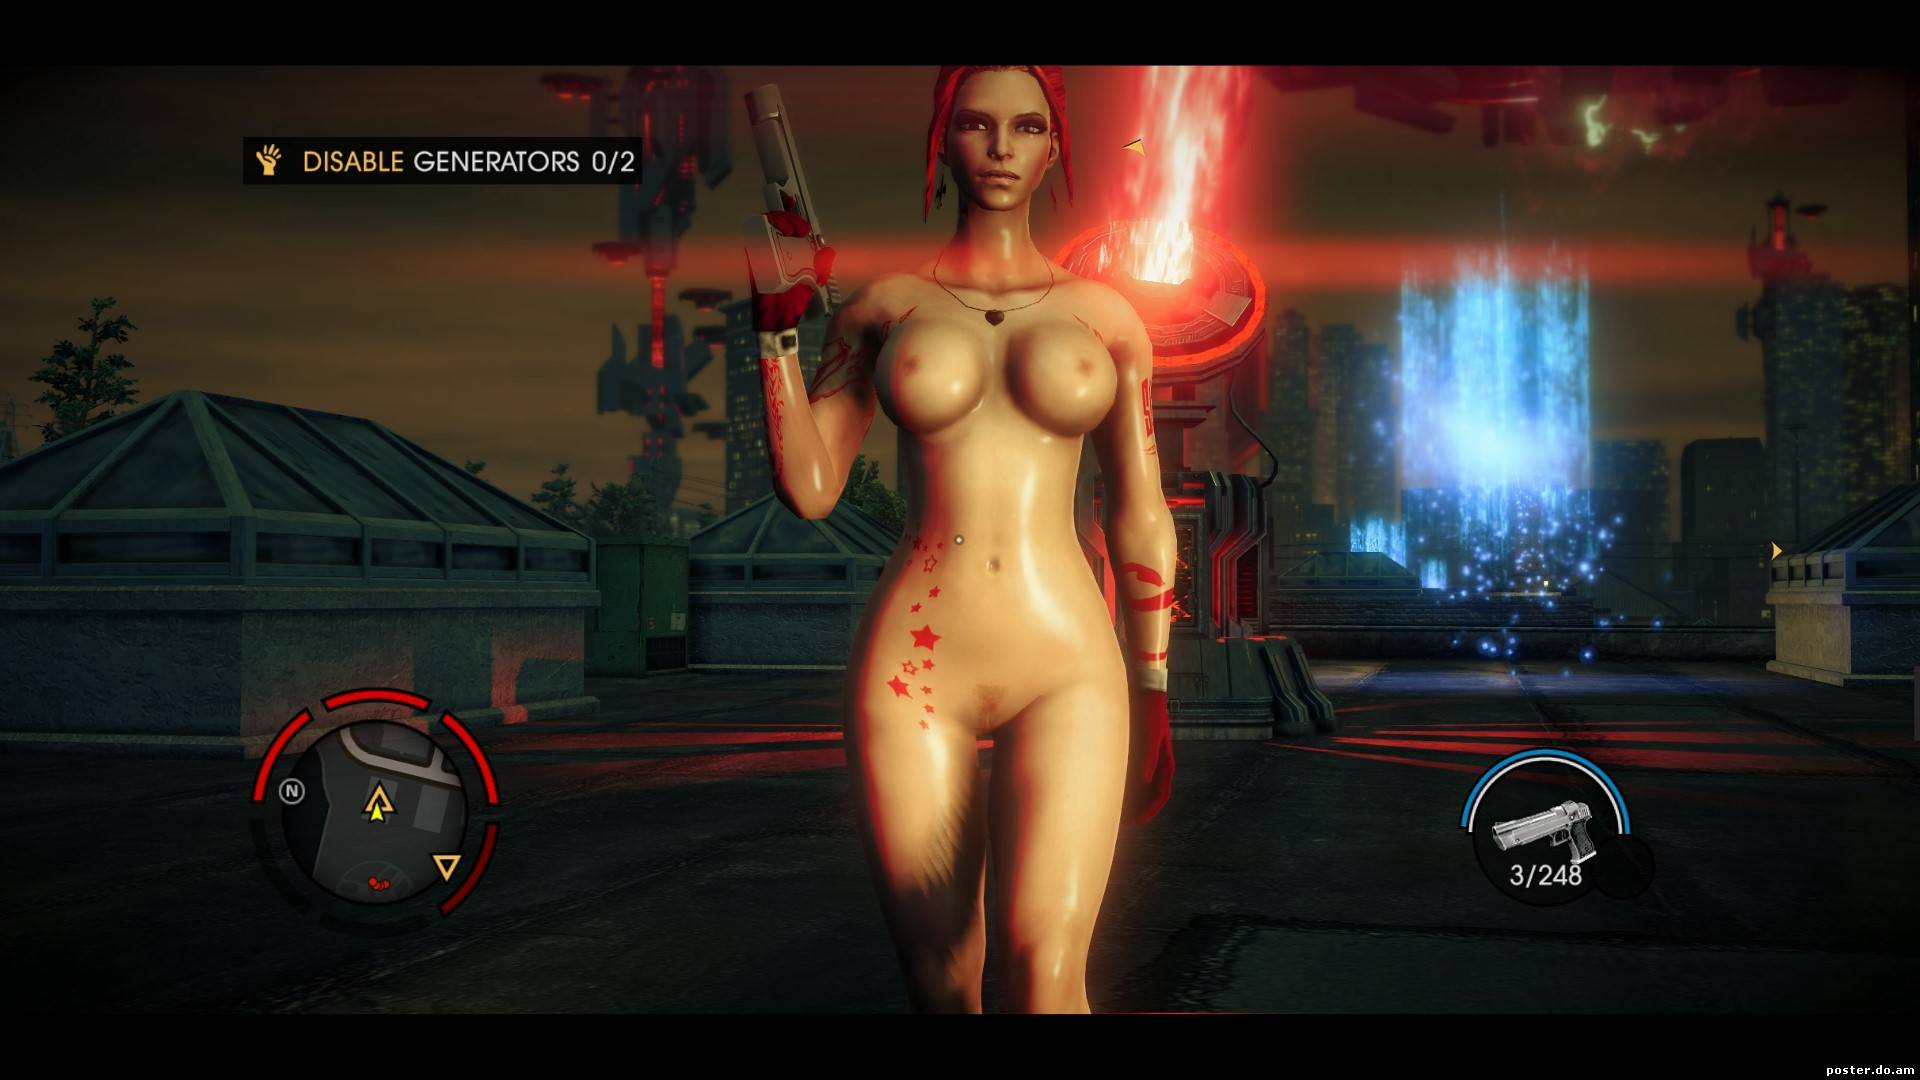 Download saints row 2 nude sex scene